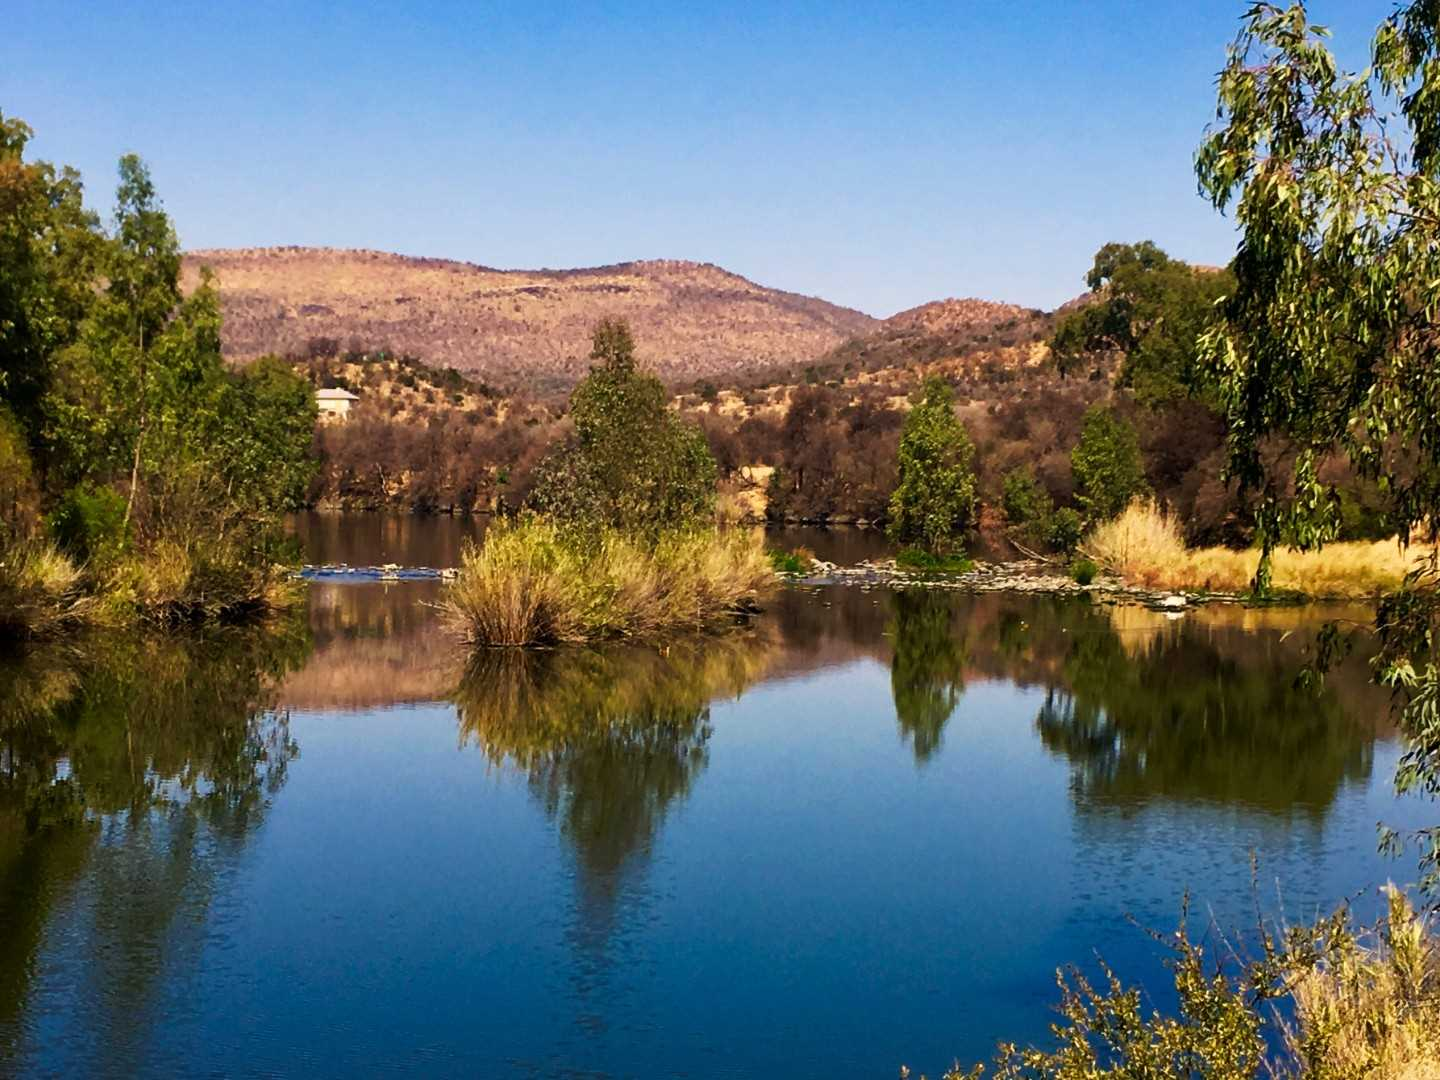 Vaal River farm in the Vredefort Dome